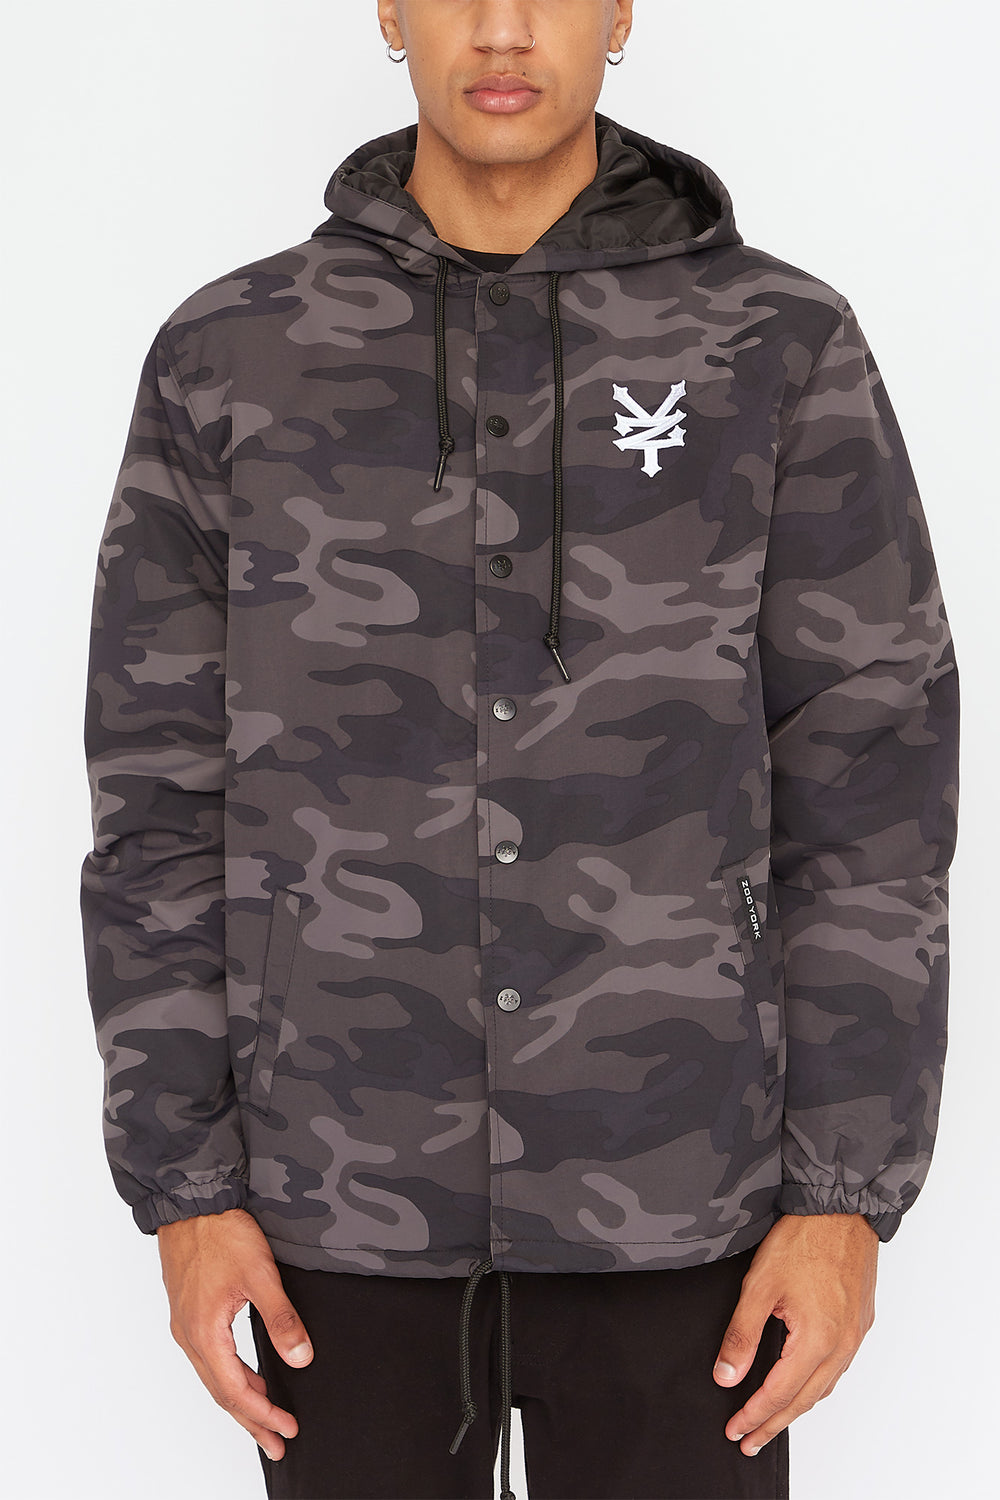 Zoo York Mens Hooded Coach Jacket Black with White